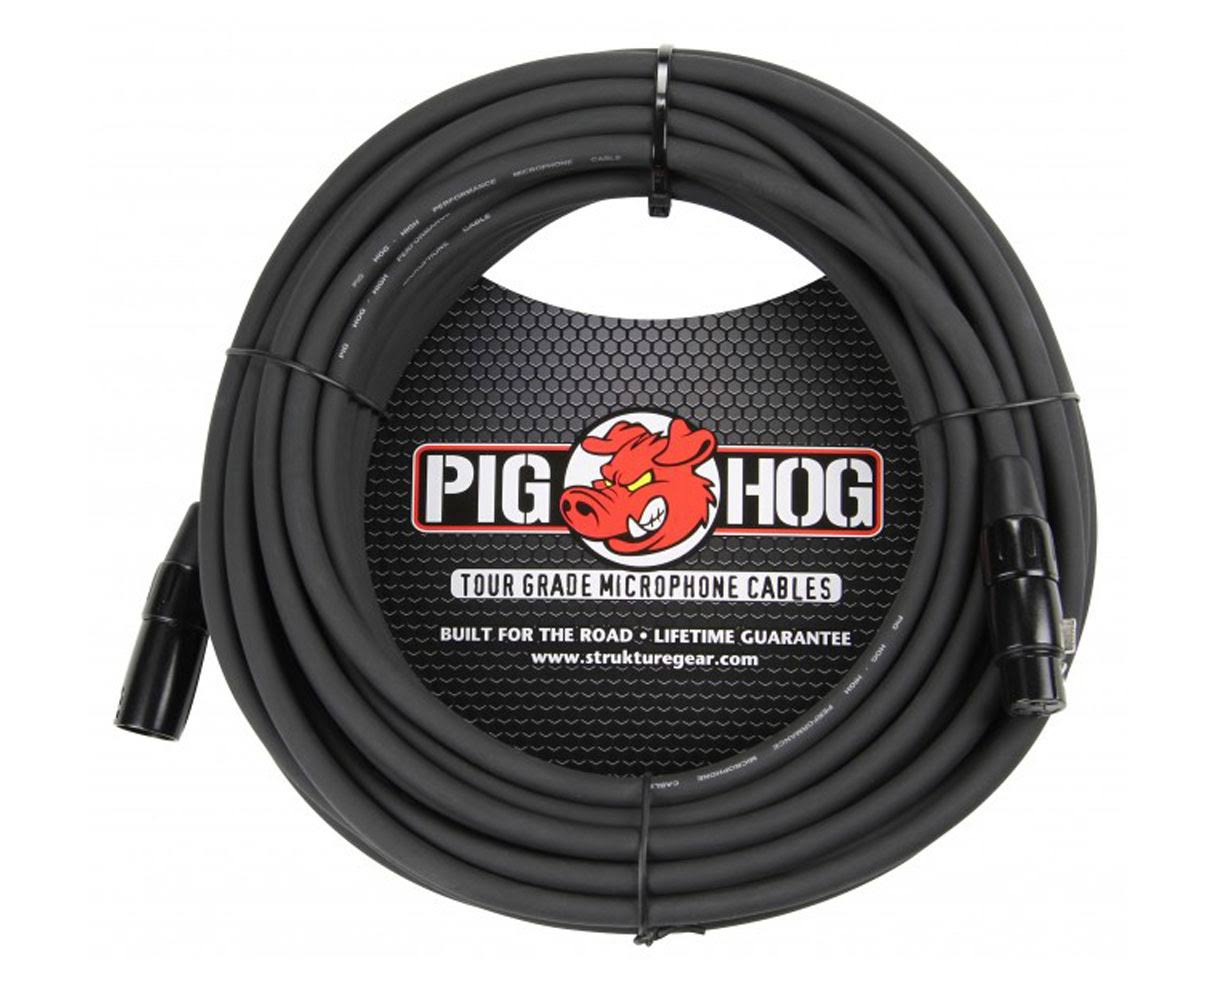 Pig Hog High Performance Xlr Microphone Cable - Black, 50'